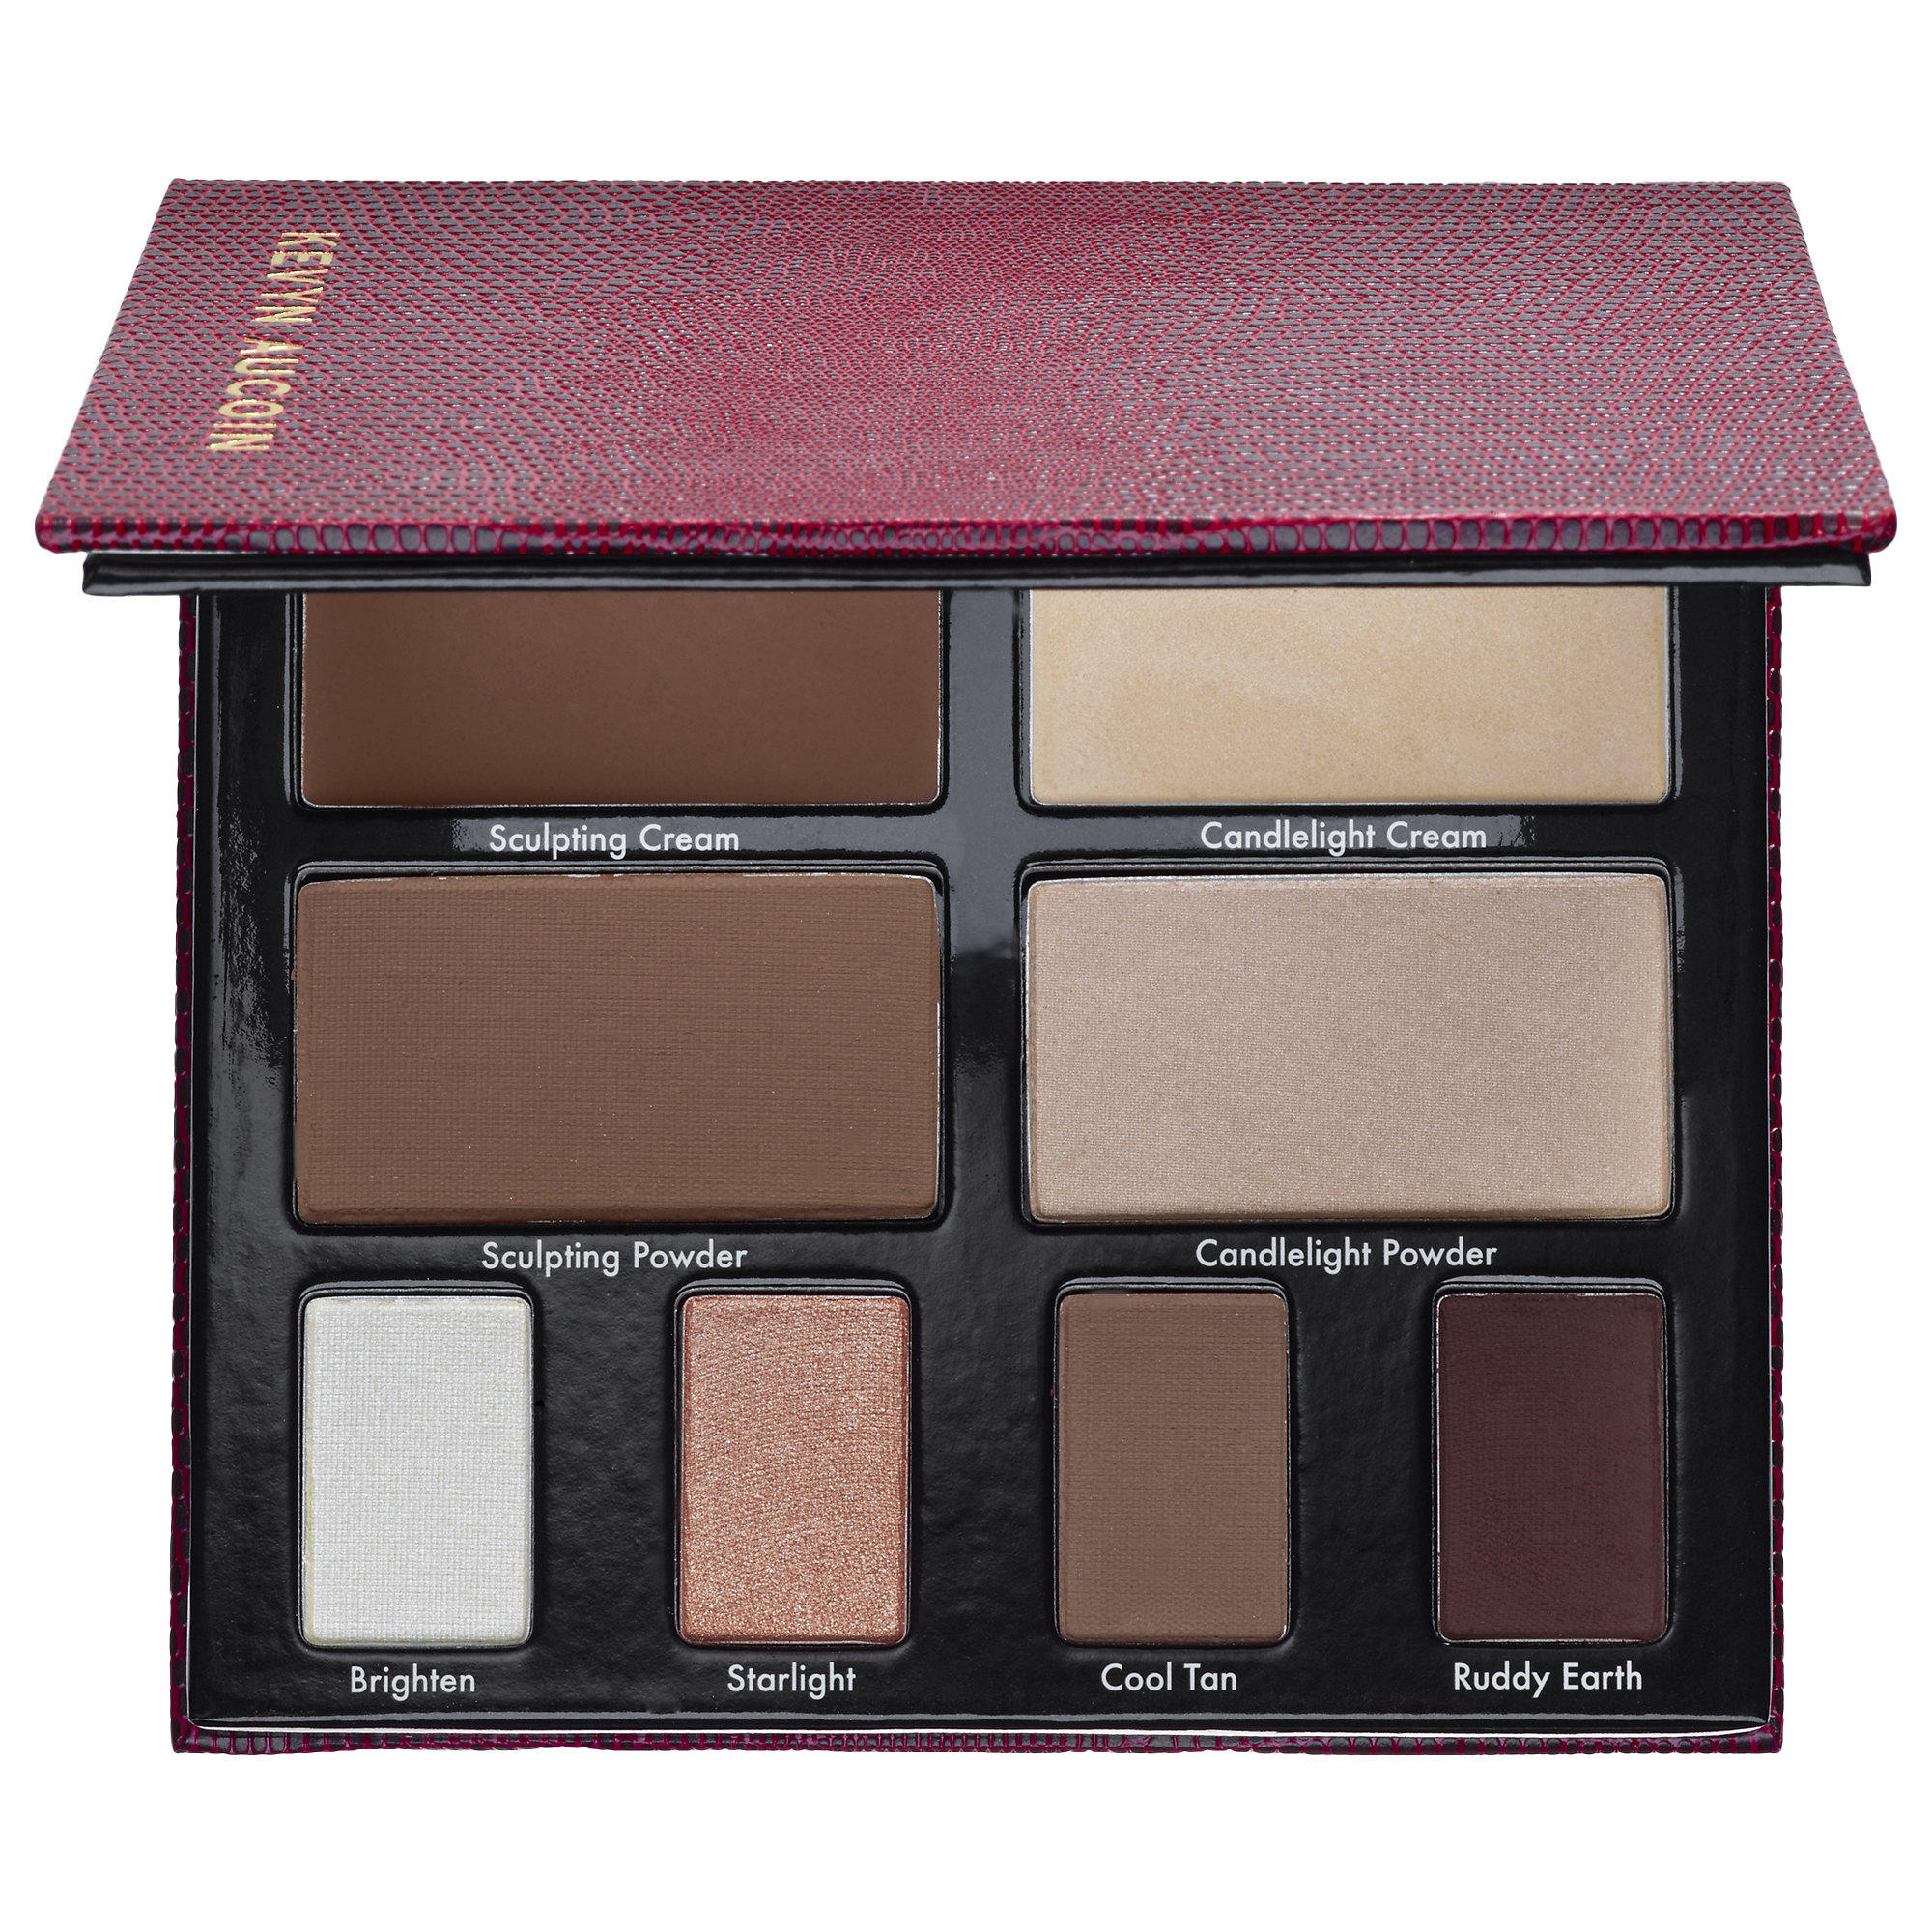 New Release Kevyn Aucoin launched New The Contour Book The Art of Sculpting + Defining Volume II